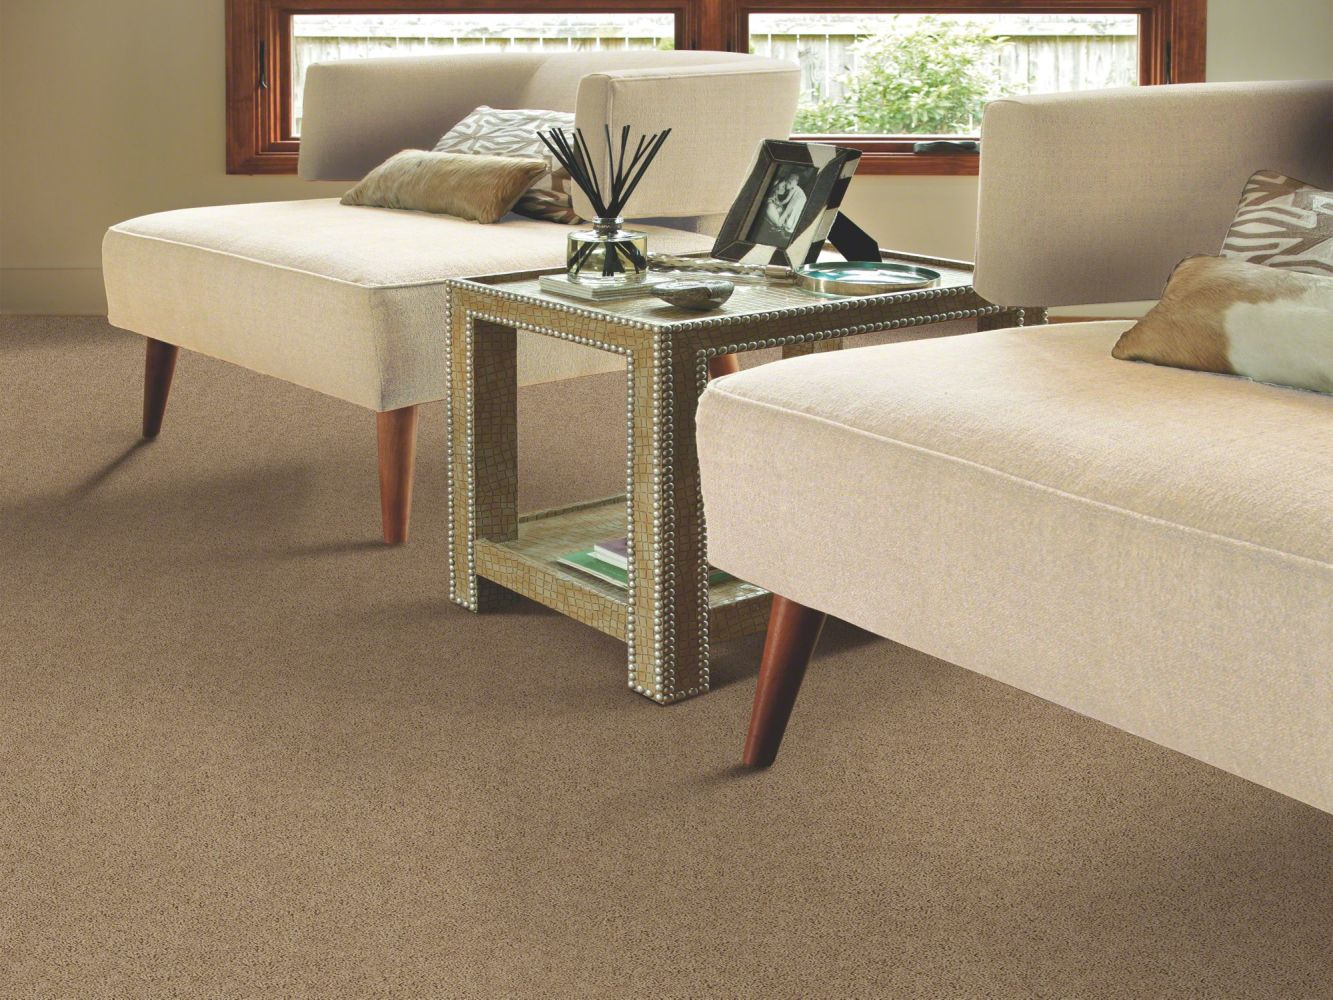 Shaw Floors Roll Special Px025 Pebble 00701_PX025